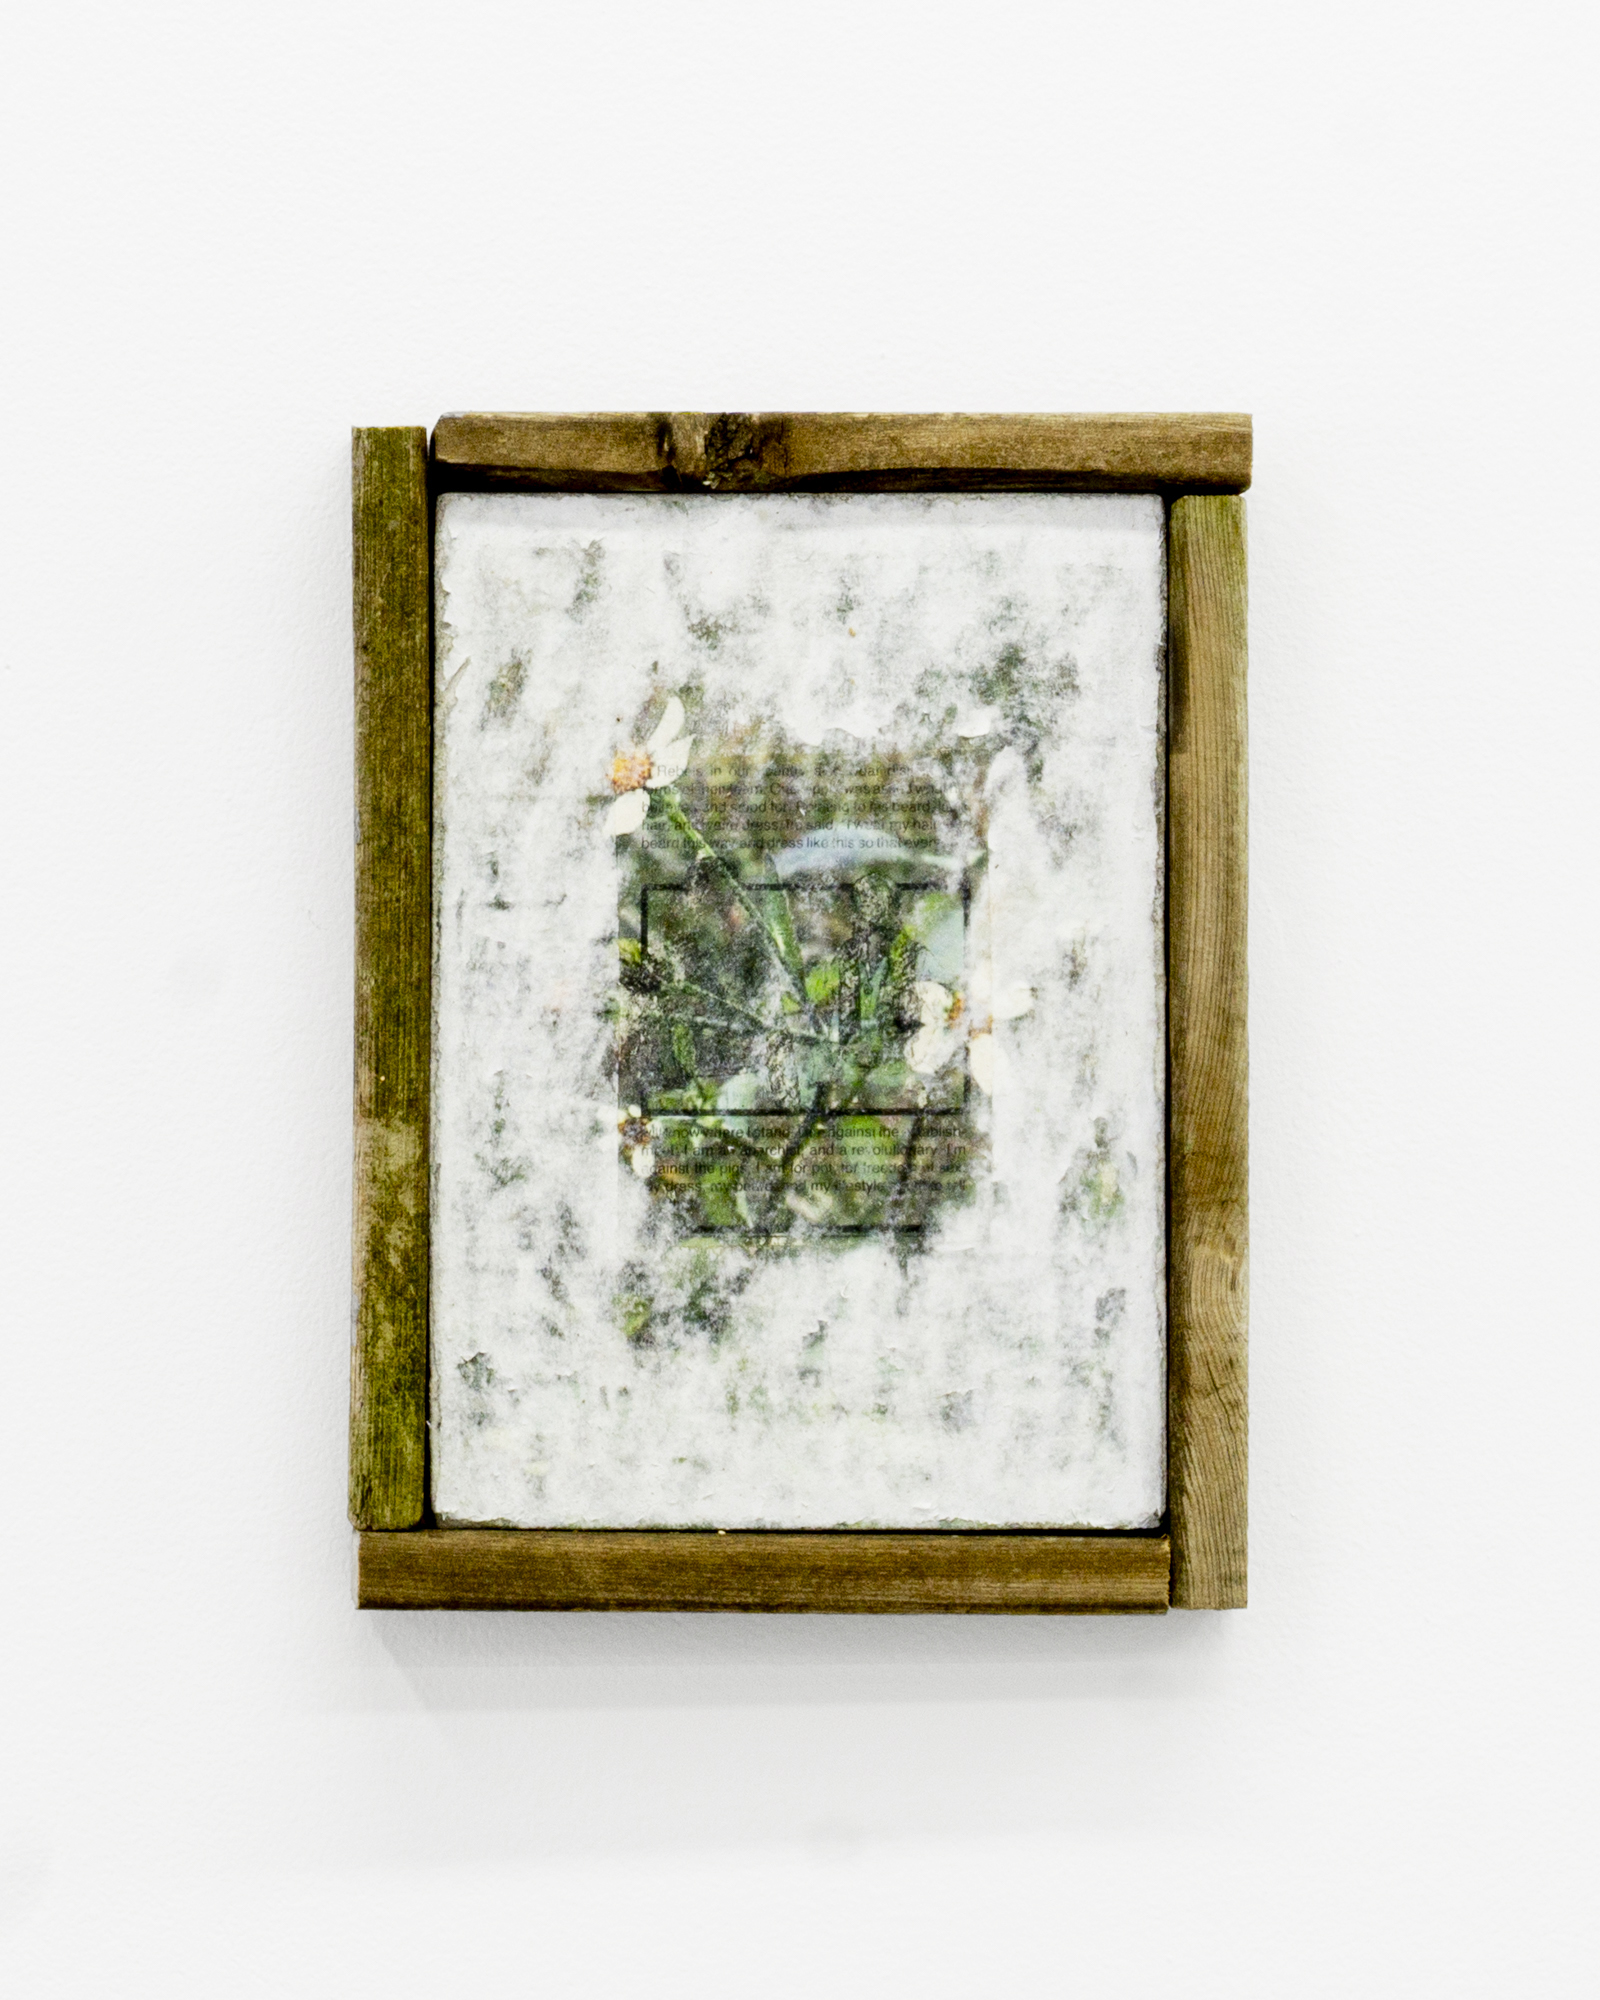 """Garrett Lockhart, """"Against the pigs, for pot, for freedom of sex,"""" 2019, Laserprint, Christian Workbook Page, Cotton Rag, Salvaged Wood, 8.5 x 11"""""""